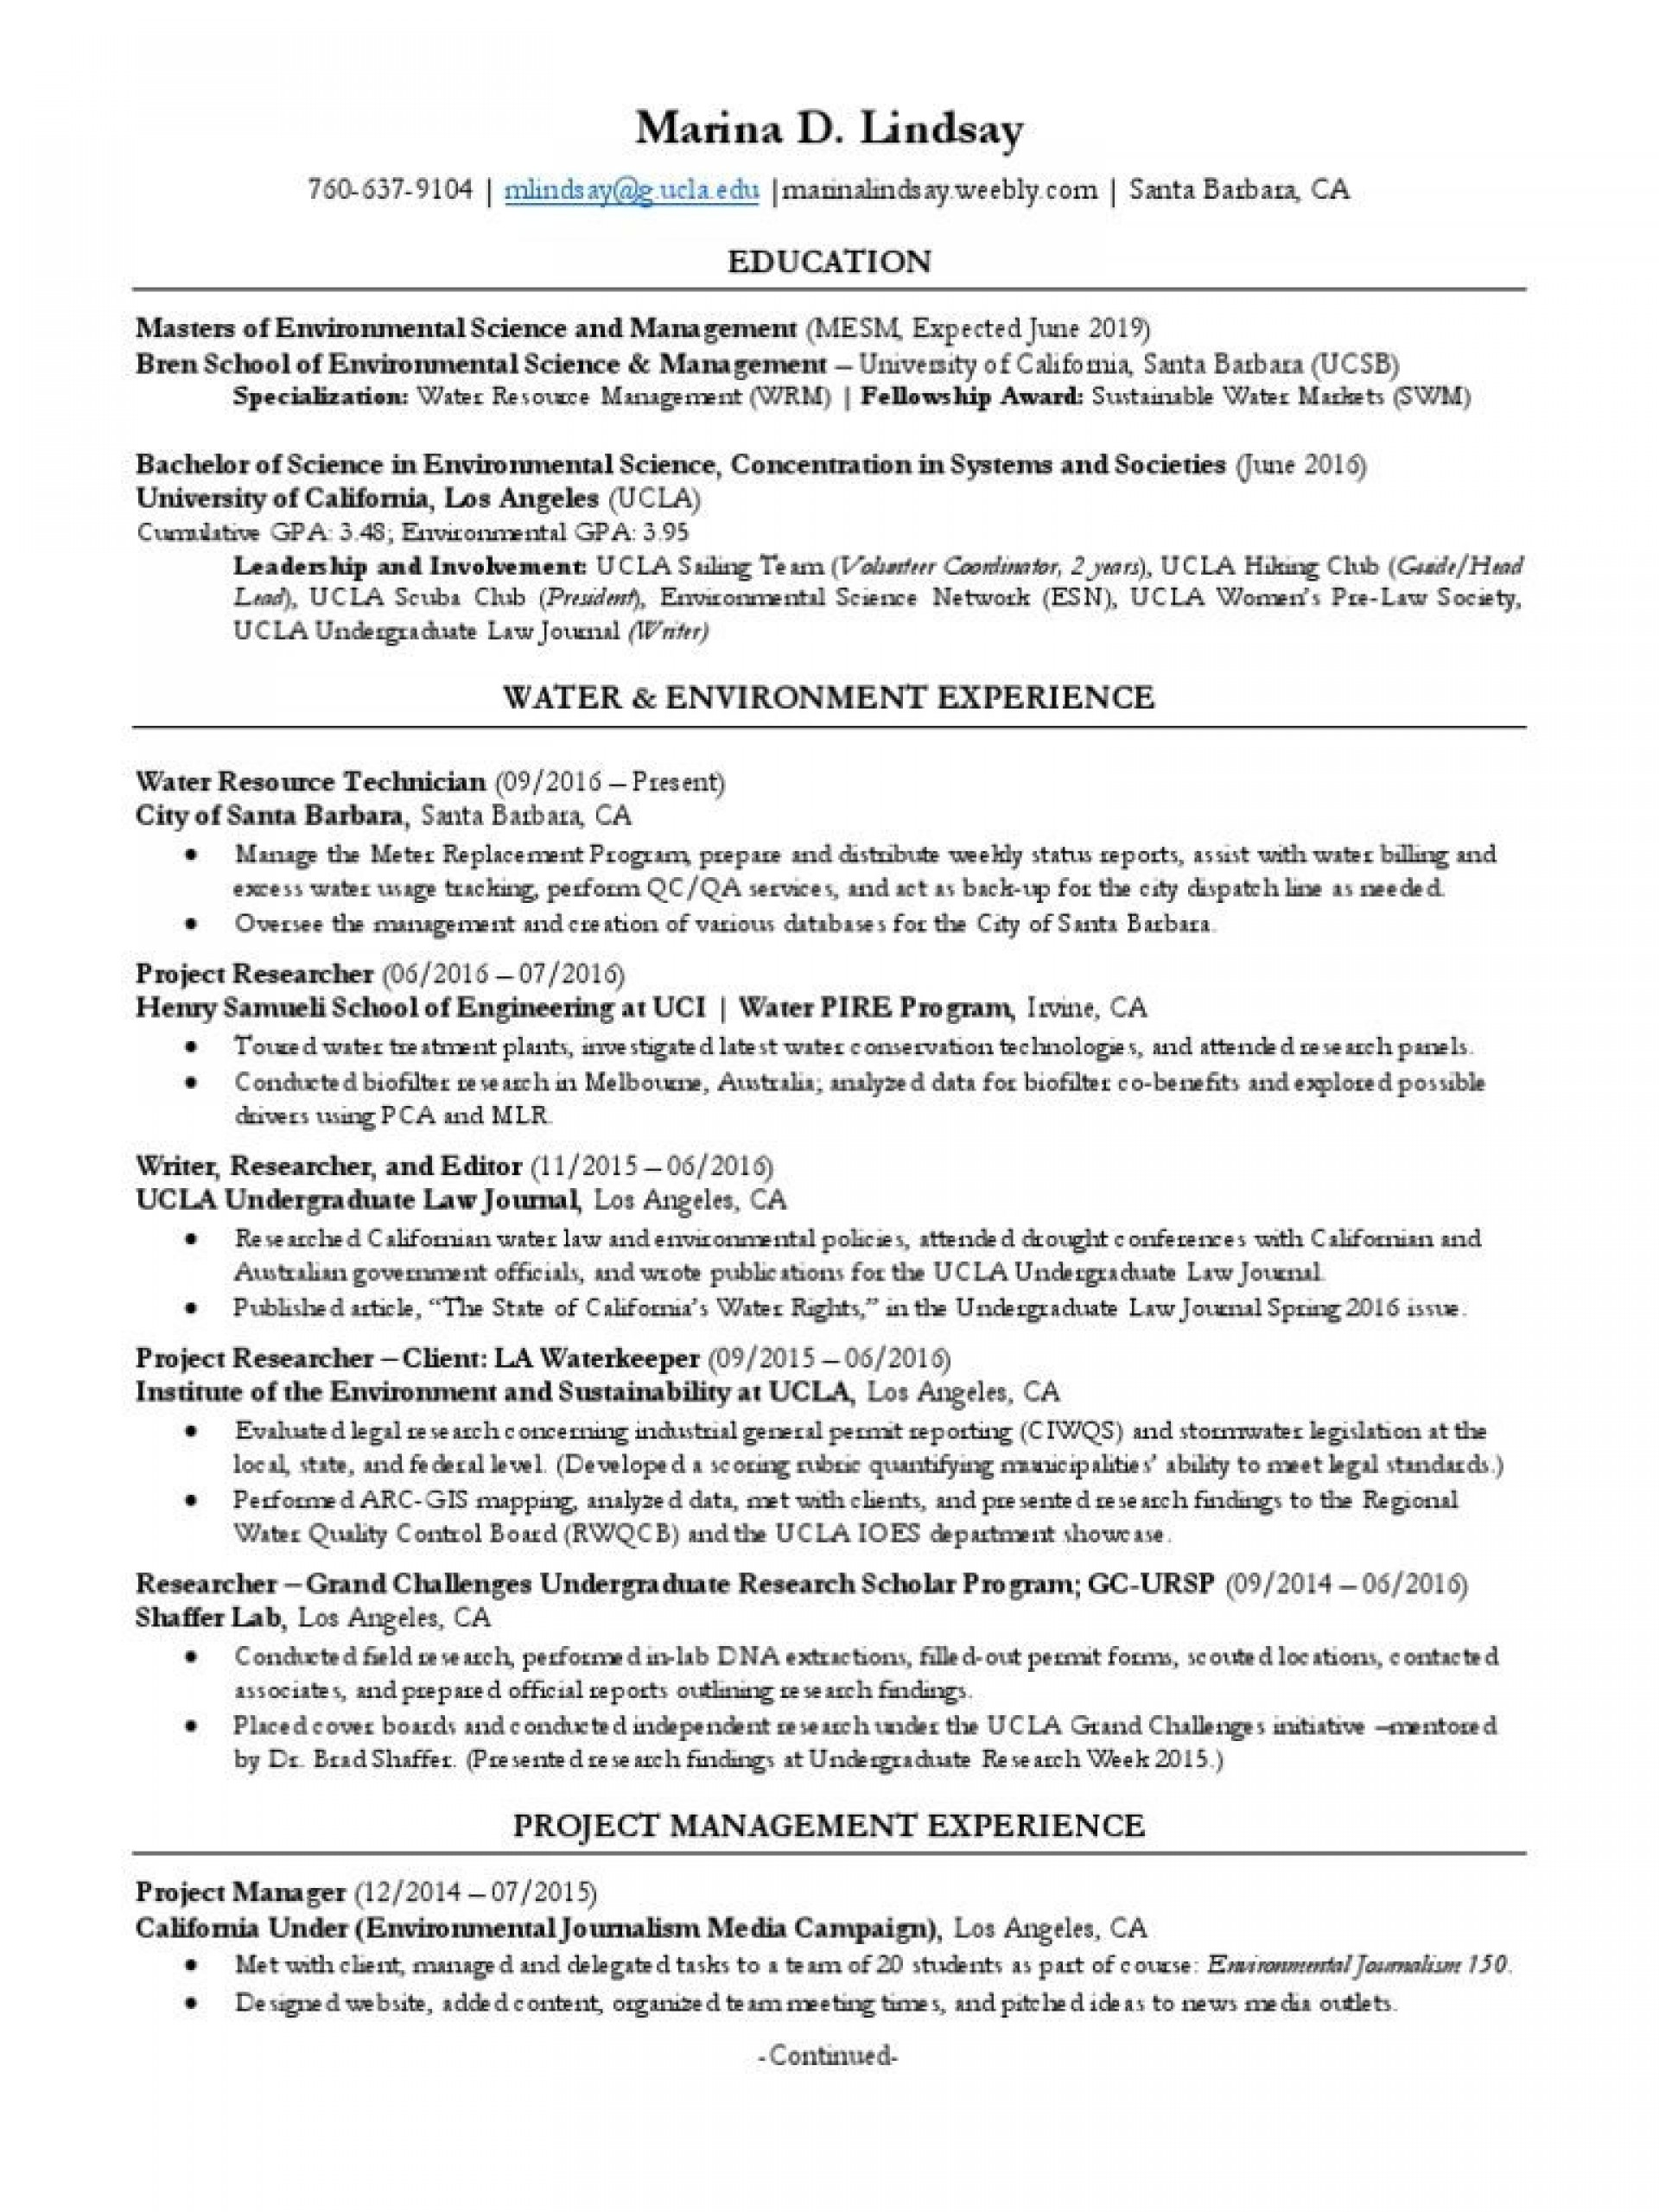 004 Picture Gallery For Website Apply Texas Topic Essays 768x1024resize7682c1024 Frightening C Essay Examples 1920